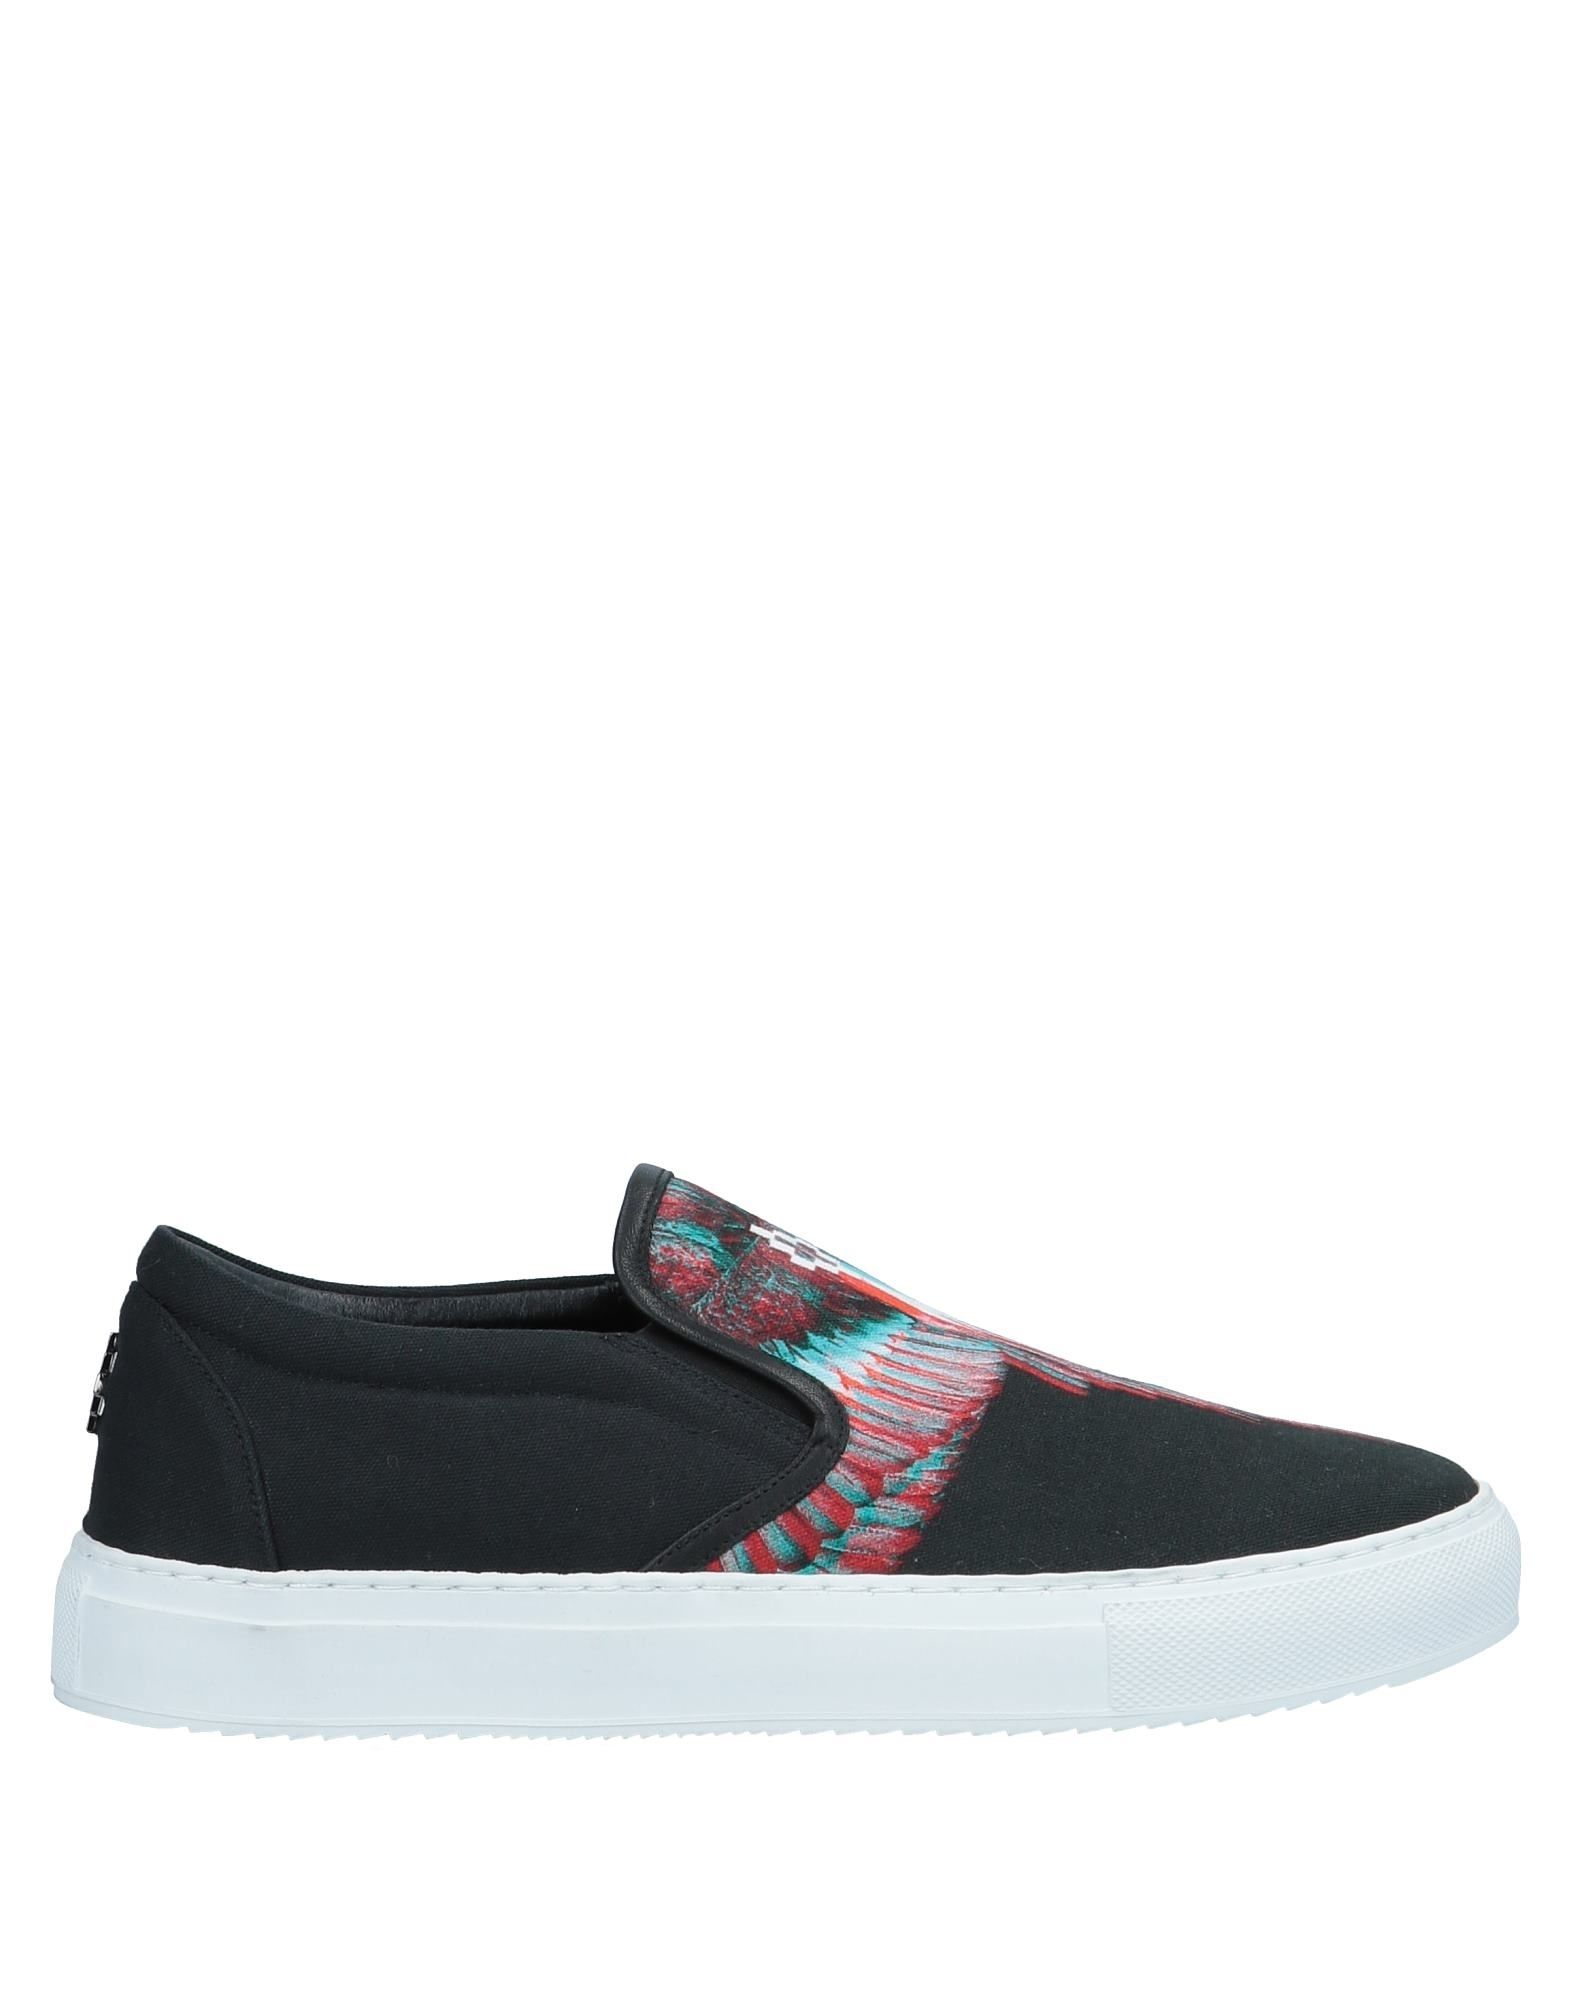 Marcelo Burlon Sneakers - Men on Marcelo Burlon Sneakers online on Men  United Kingdom - 11531155VK 5ecdad